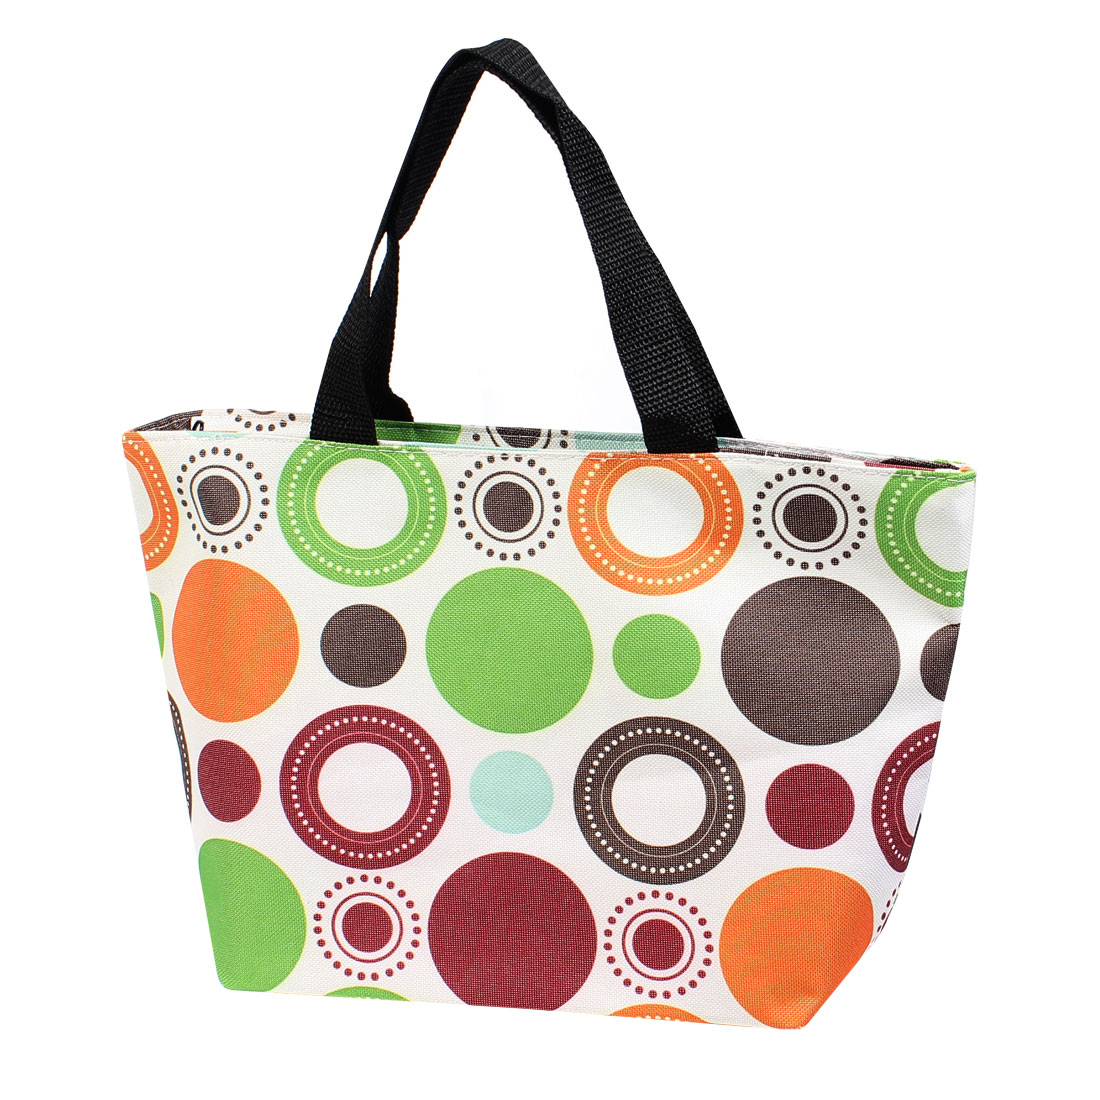 Orange Green Circle Dots Prints Waterproof Shopping Bag Handbag